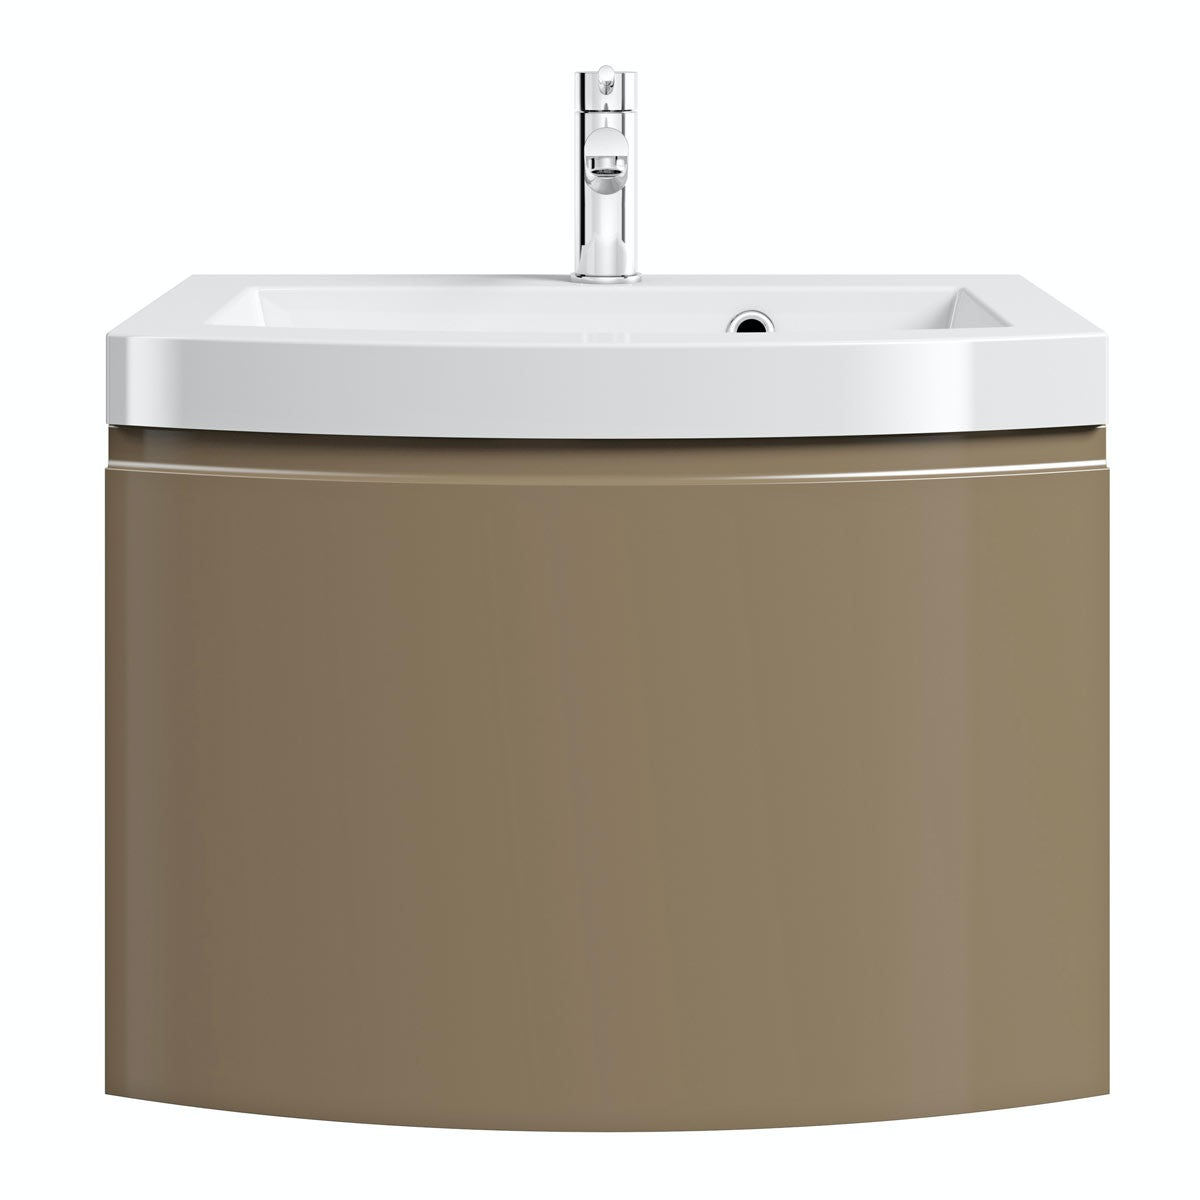 Mode Harrison Latte Wall Hung Vanity Unit With Basin 600mm Offer Pack